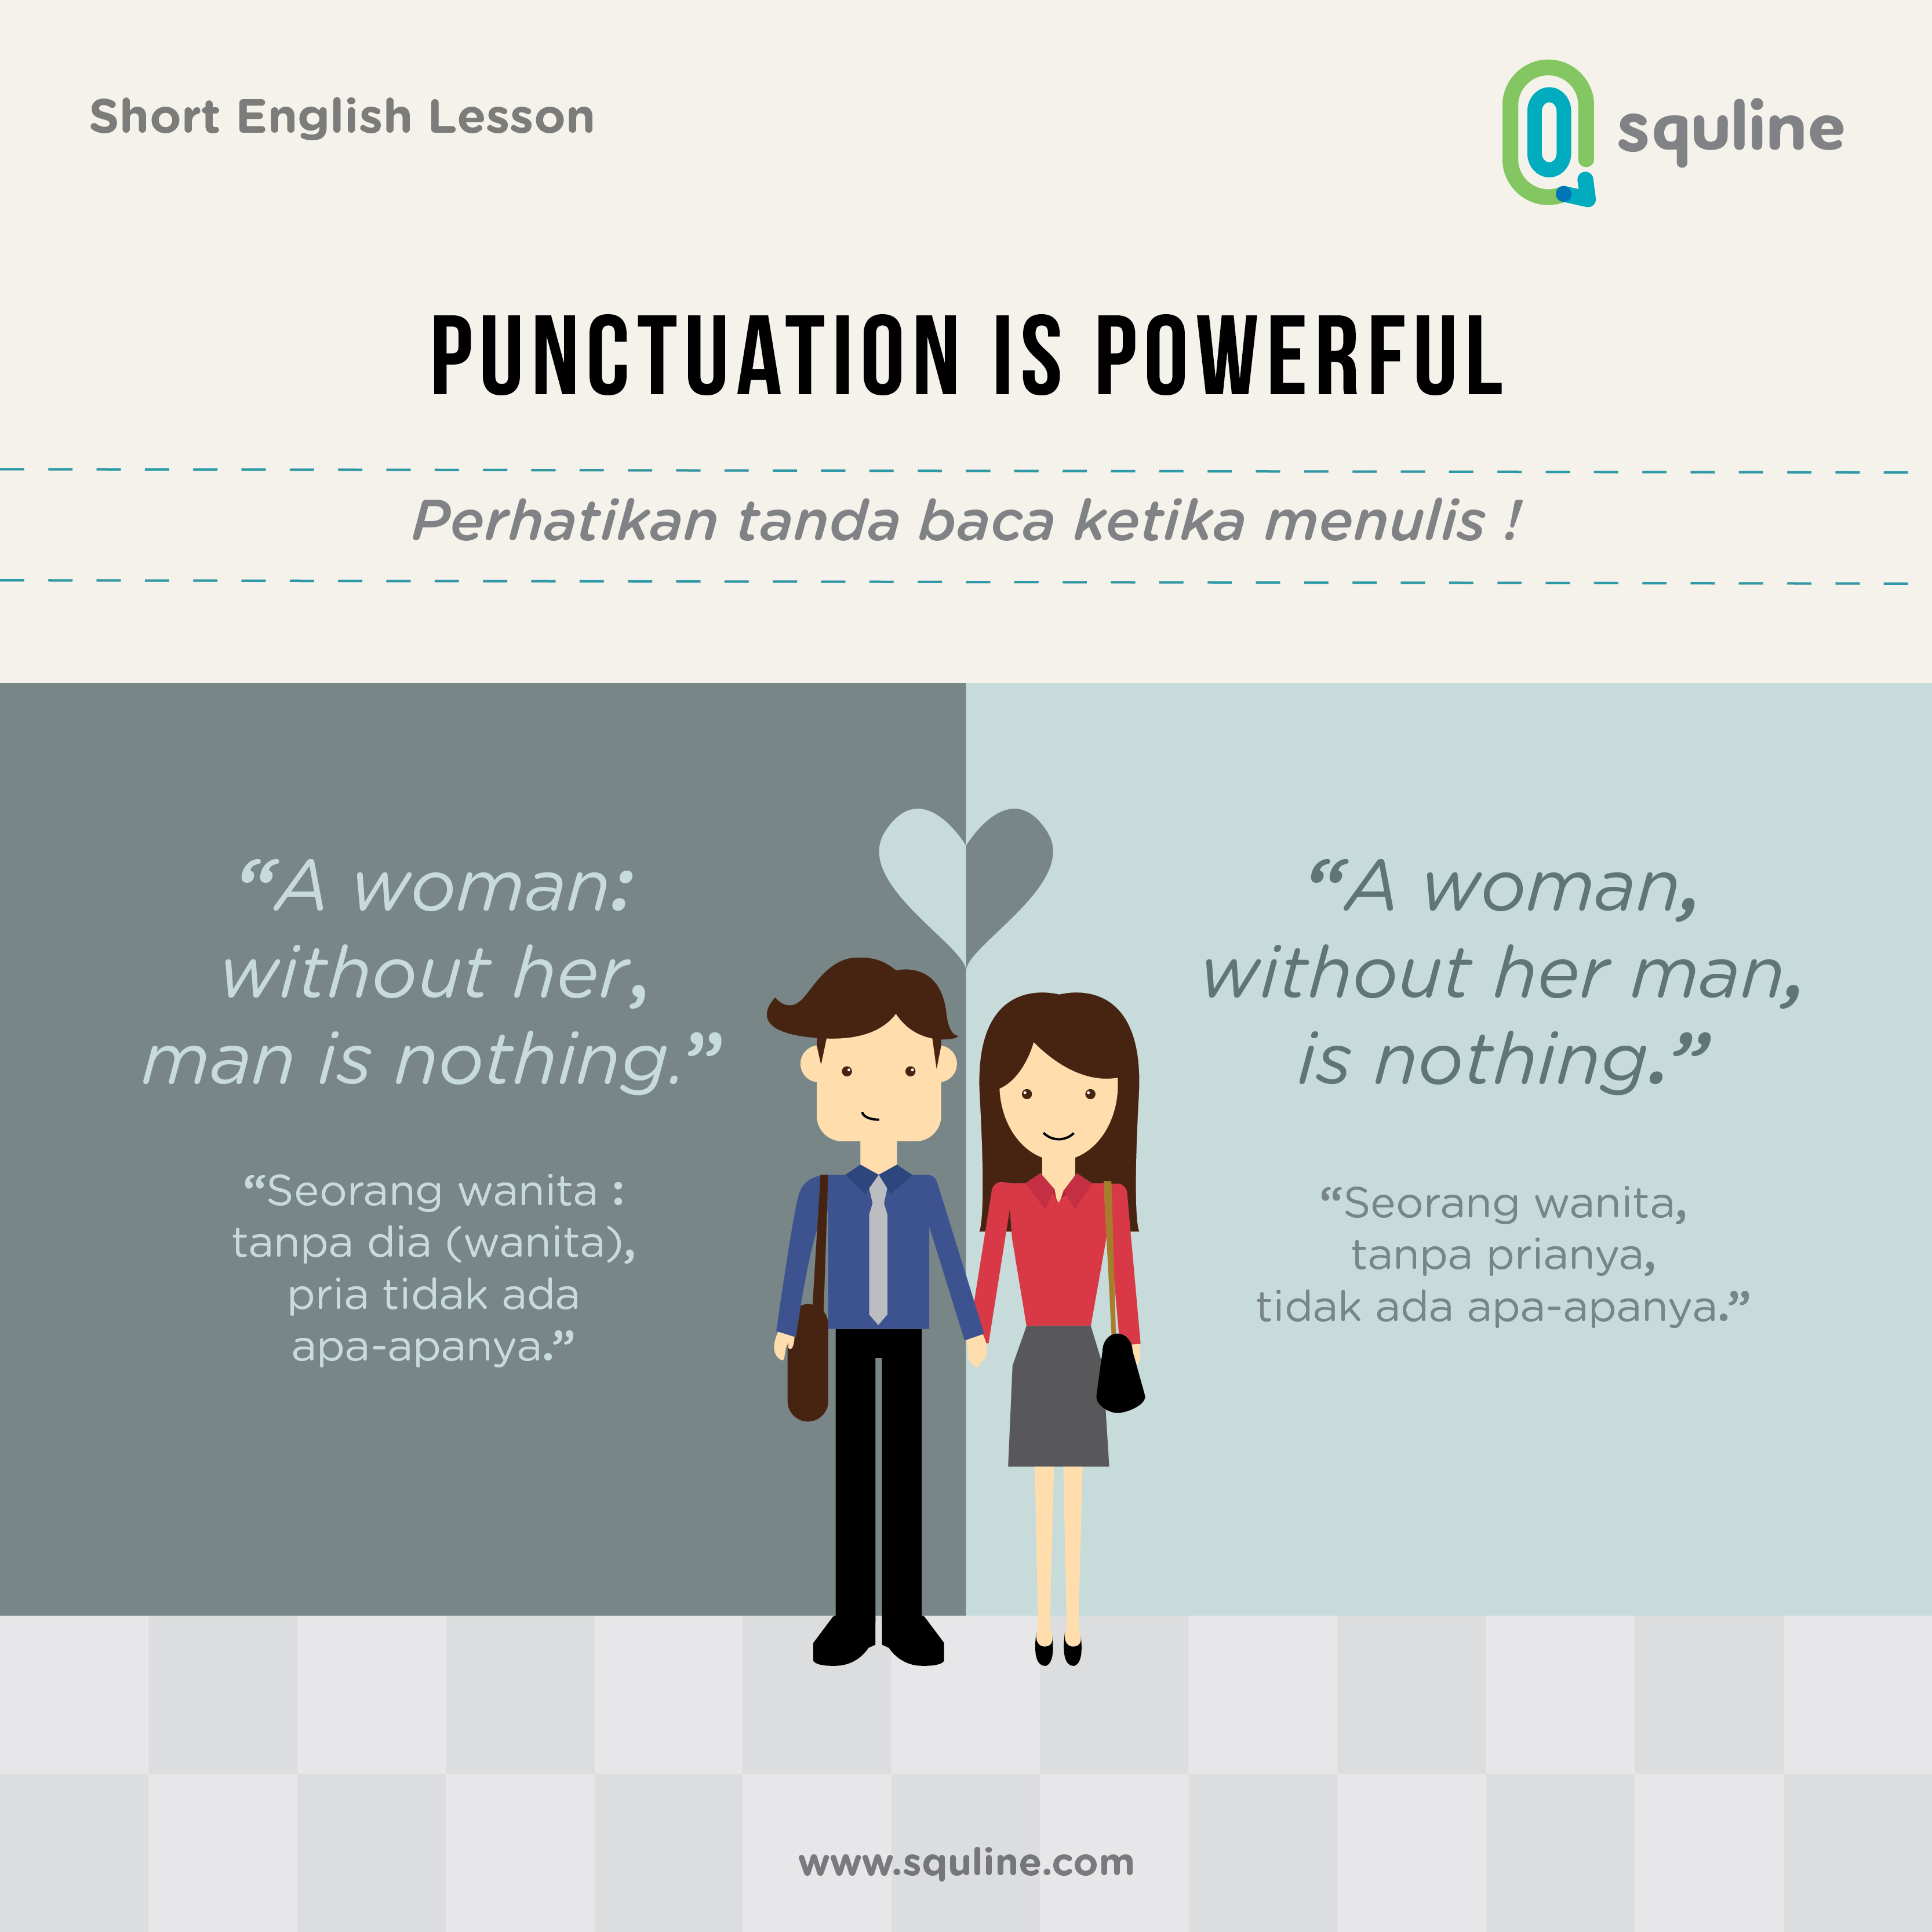 3_english-short-lesson_punctuation-is-powerful_october-4